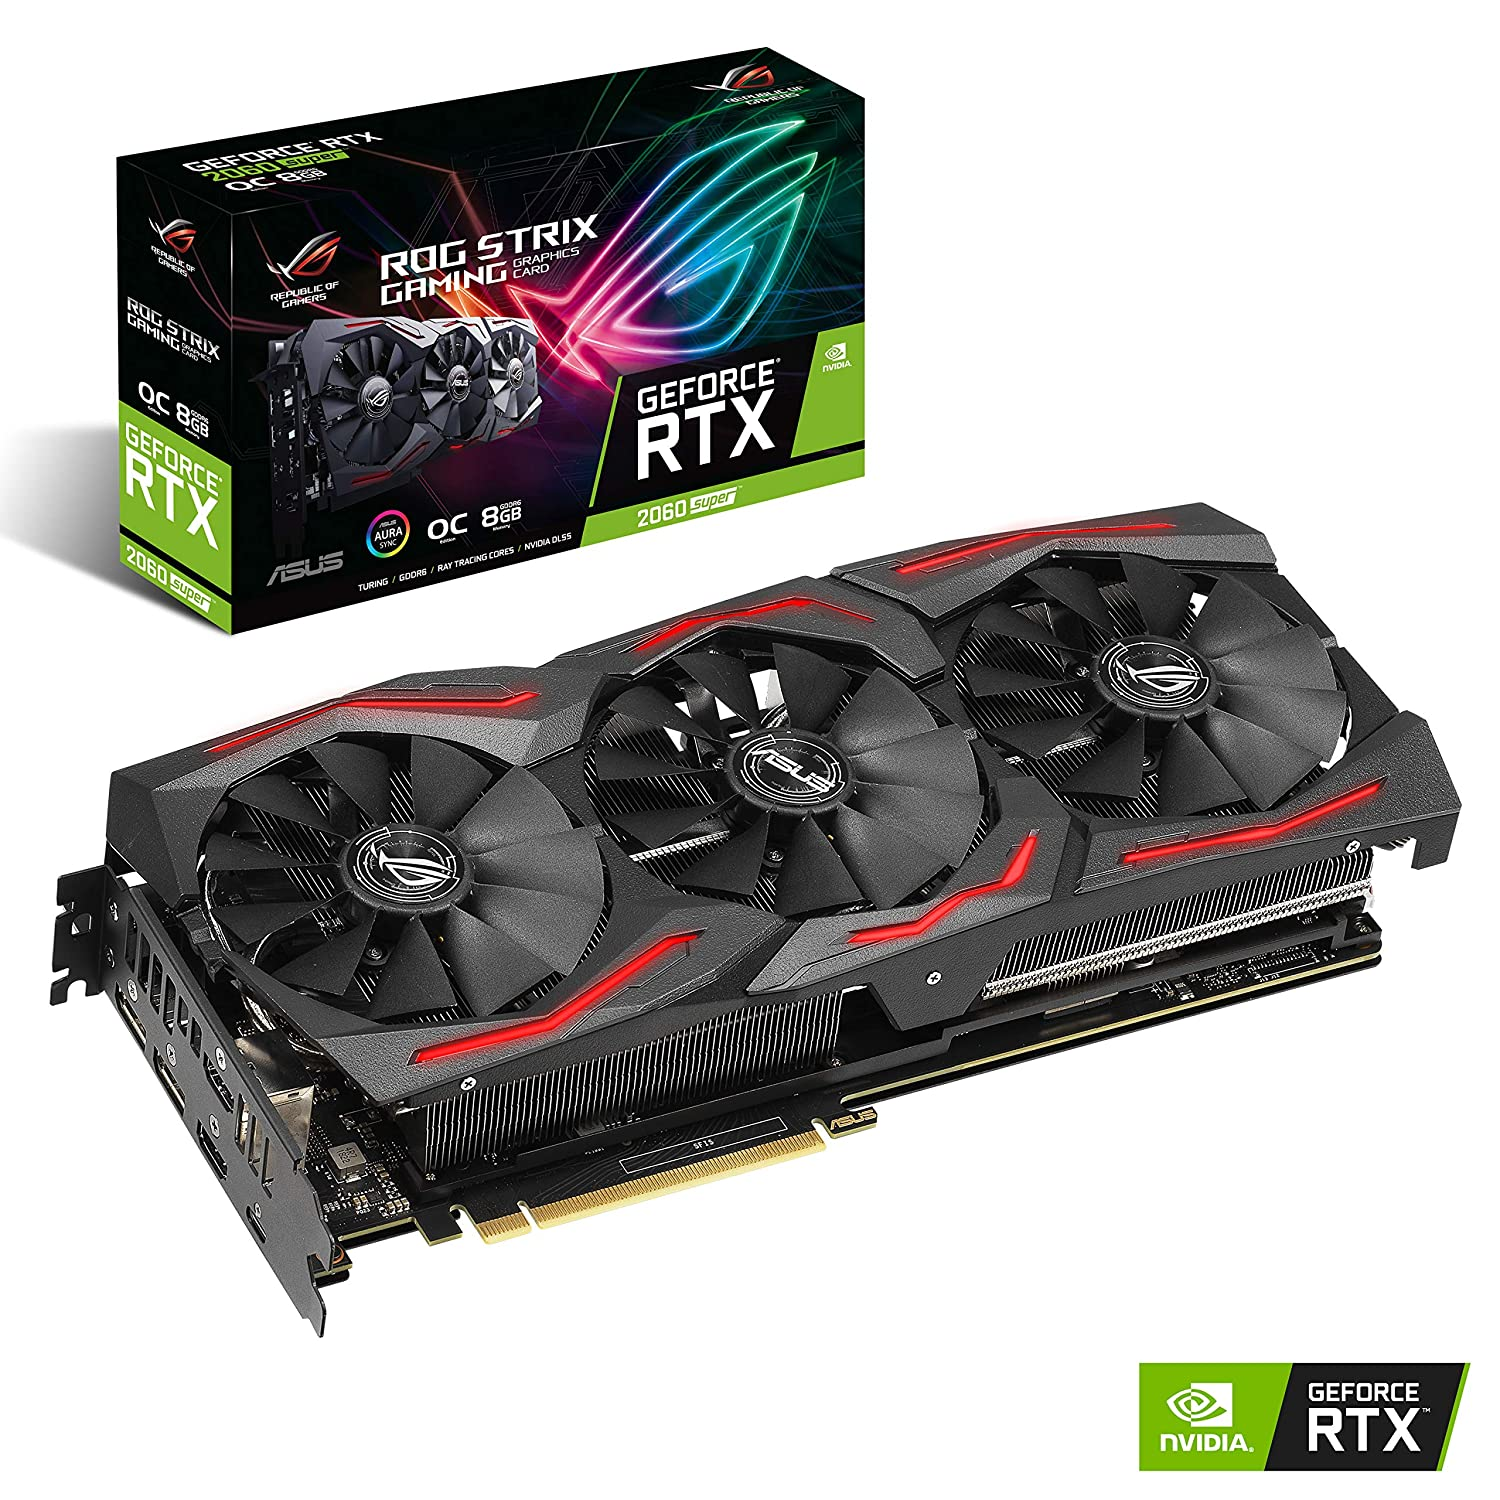 ASUS ROG STRIX GeForce RTX 2060 SUPER Overclocked 8G GDDR6 HDMI DisplayPort USB Type-C Gaming Graphics Card (ROG-STRIX-RTX-2060S-O8G-GAMING)